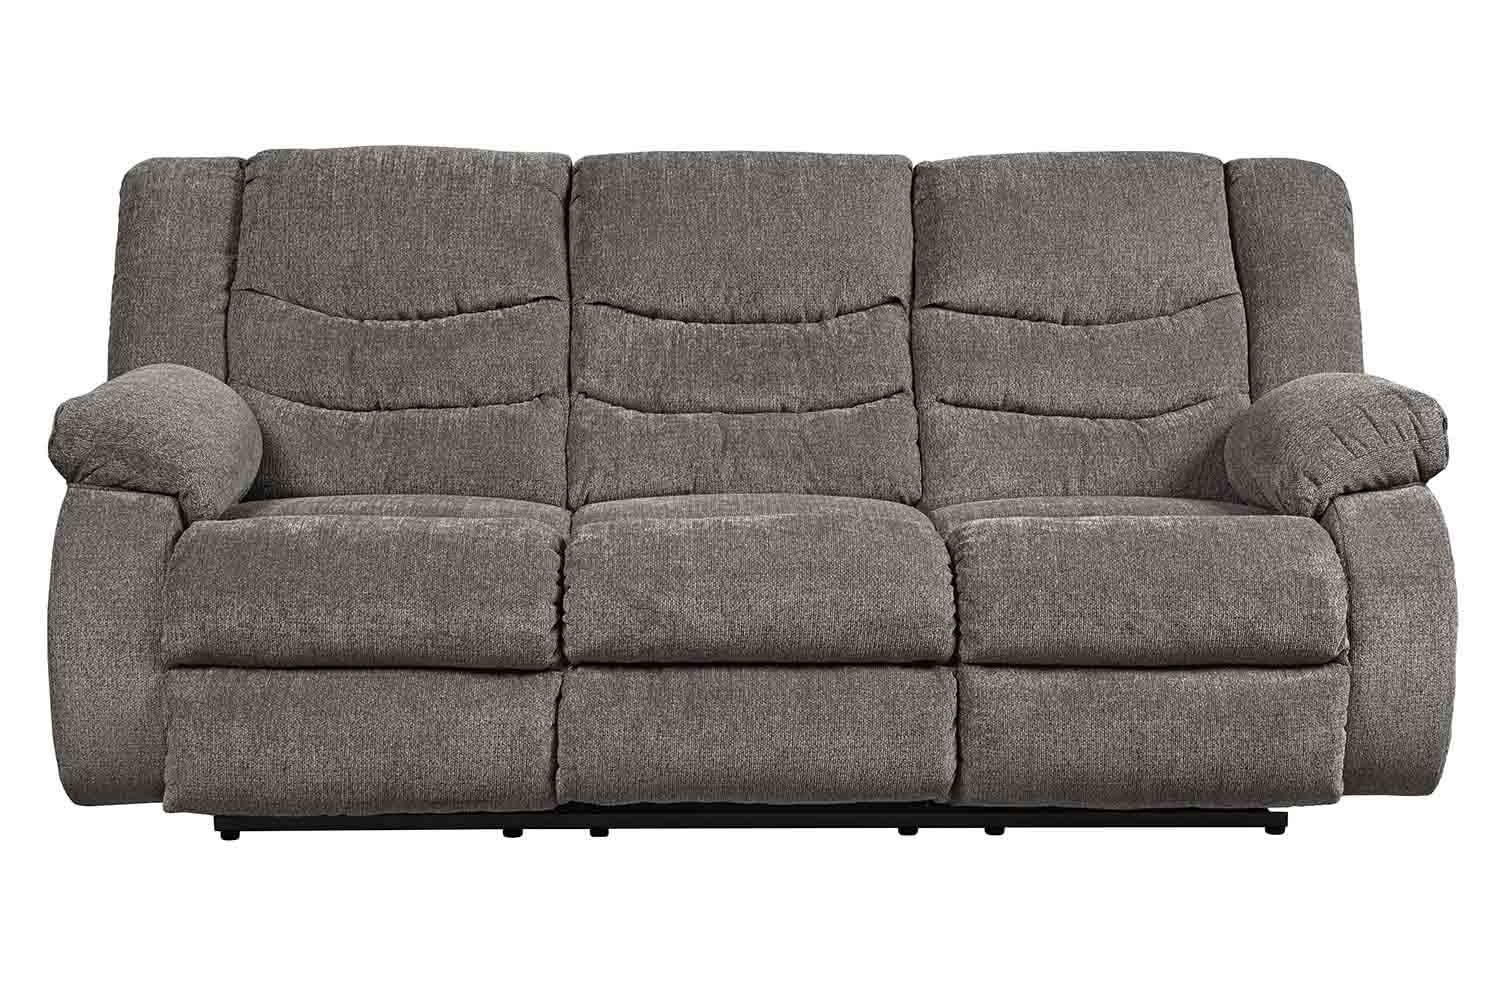 Tulen Reclining Sofa In Slate